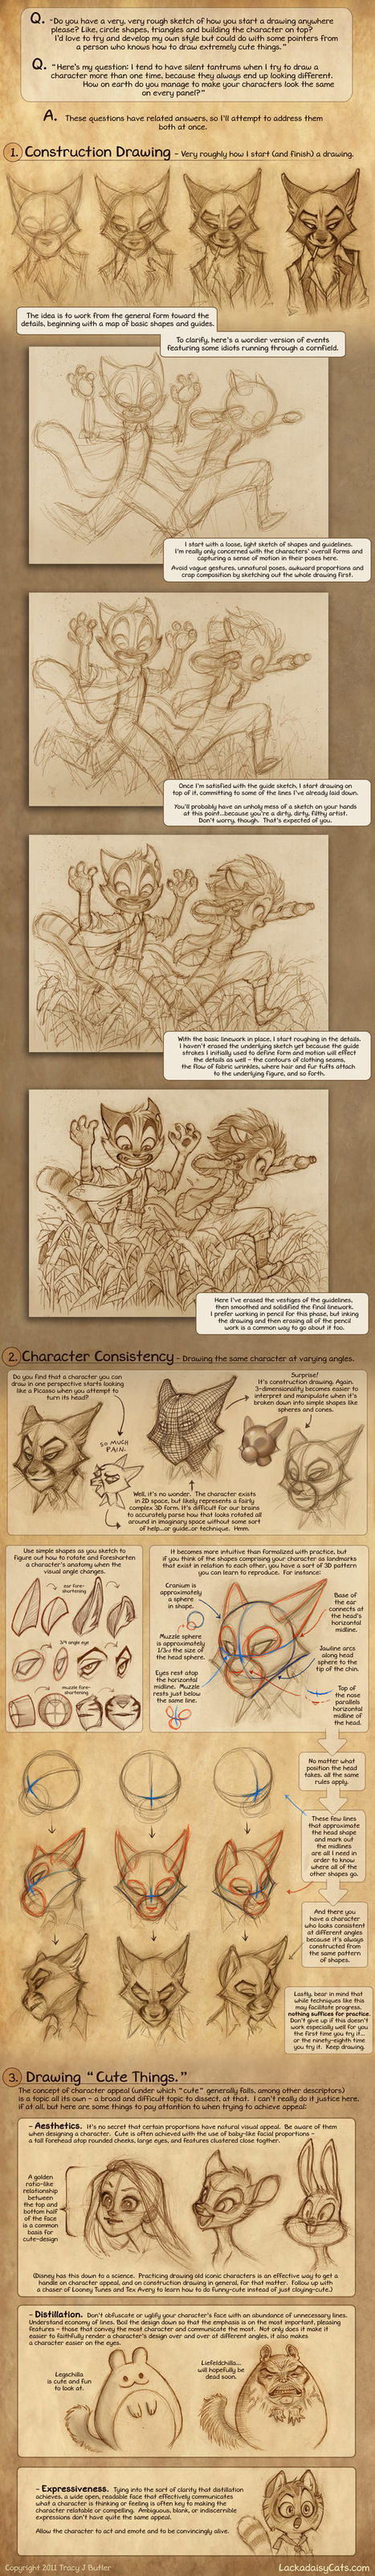 Character Drawing Tutorial | Circolo d'Arti | Scoop.it